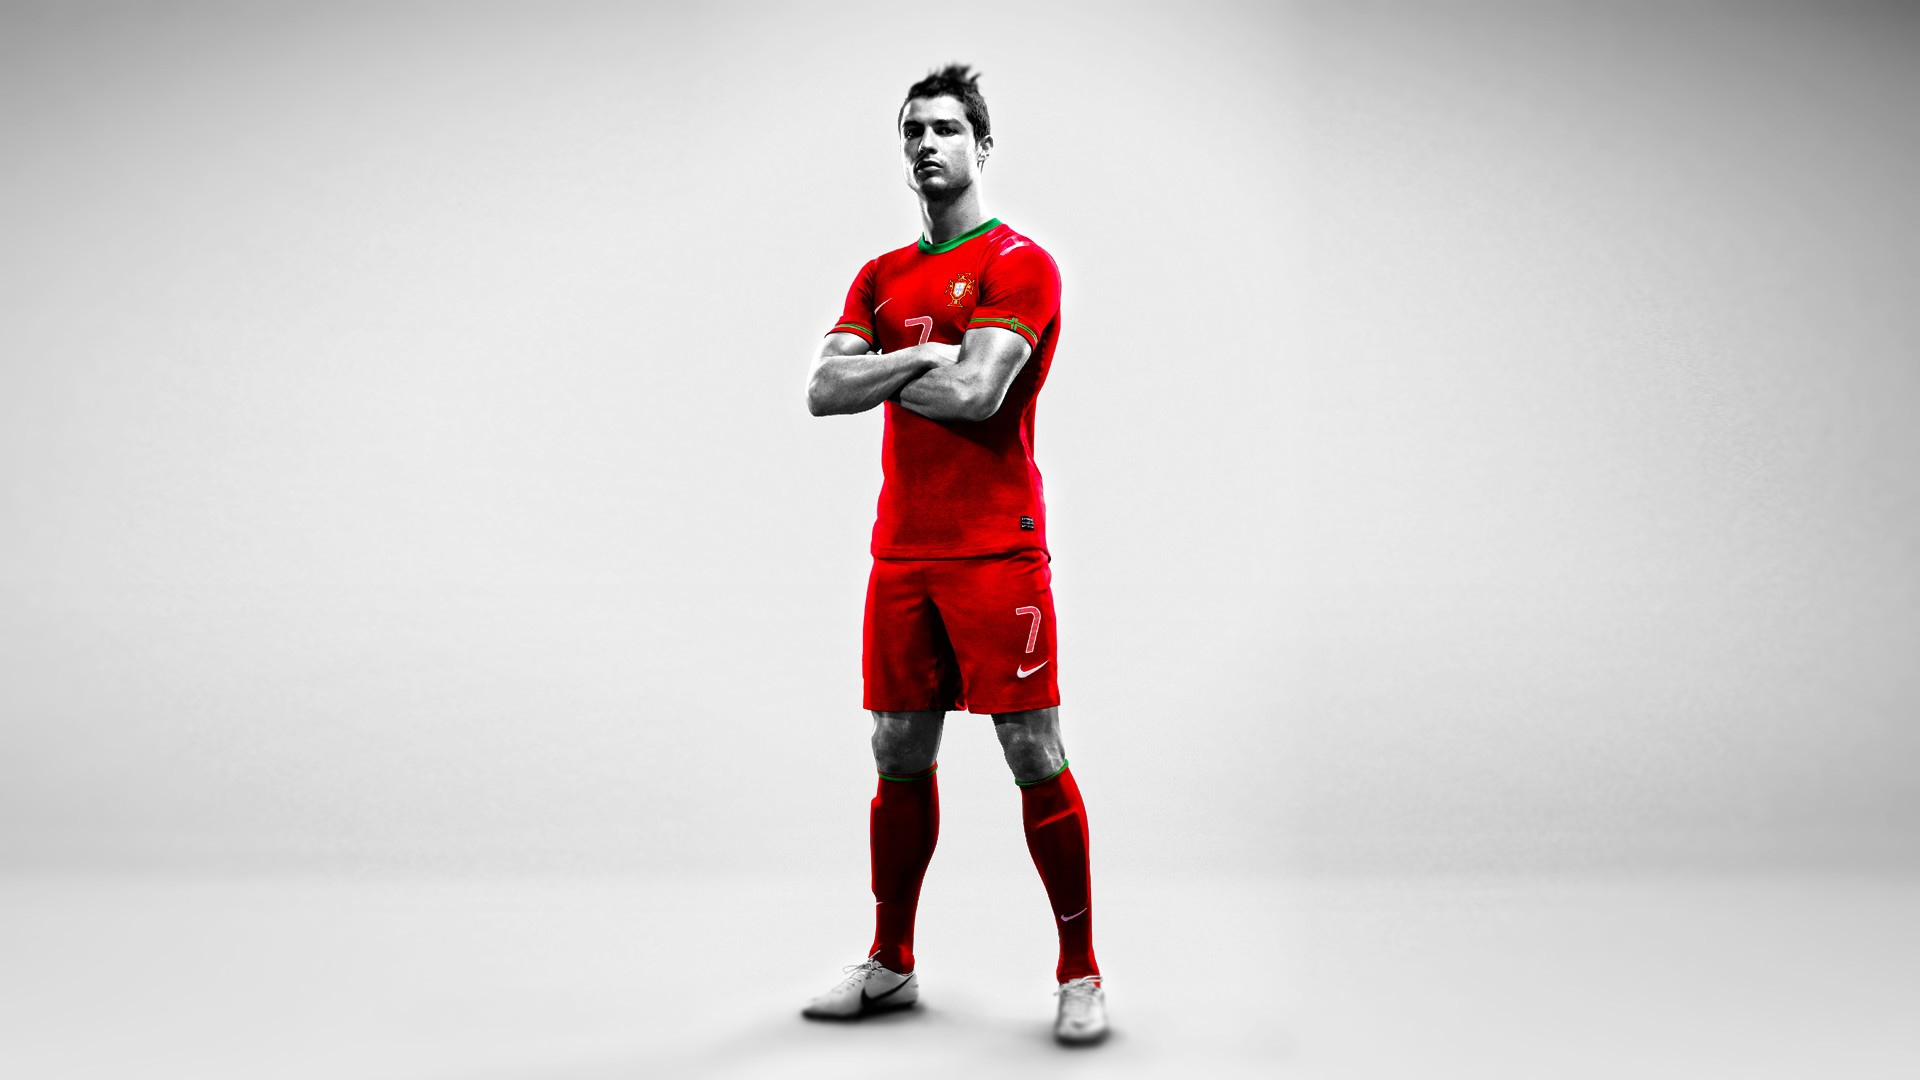 Collection of Cristiano Ronaldo Wallpapers Hd on Spyder Wallpapers 1920x1080